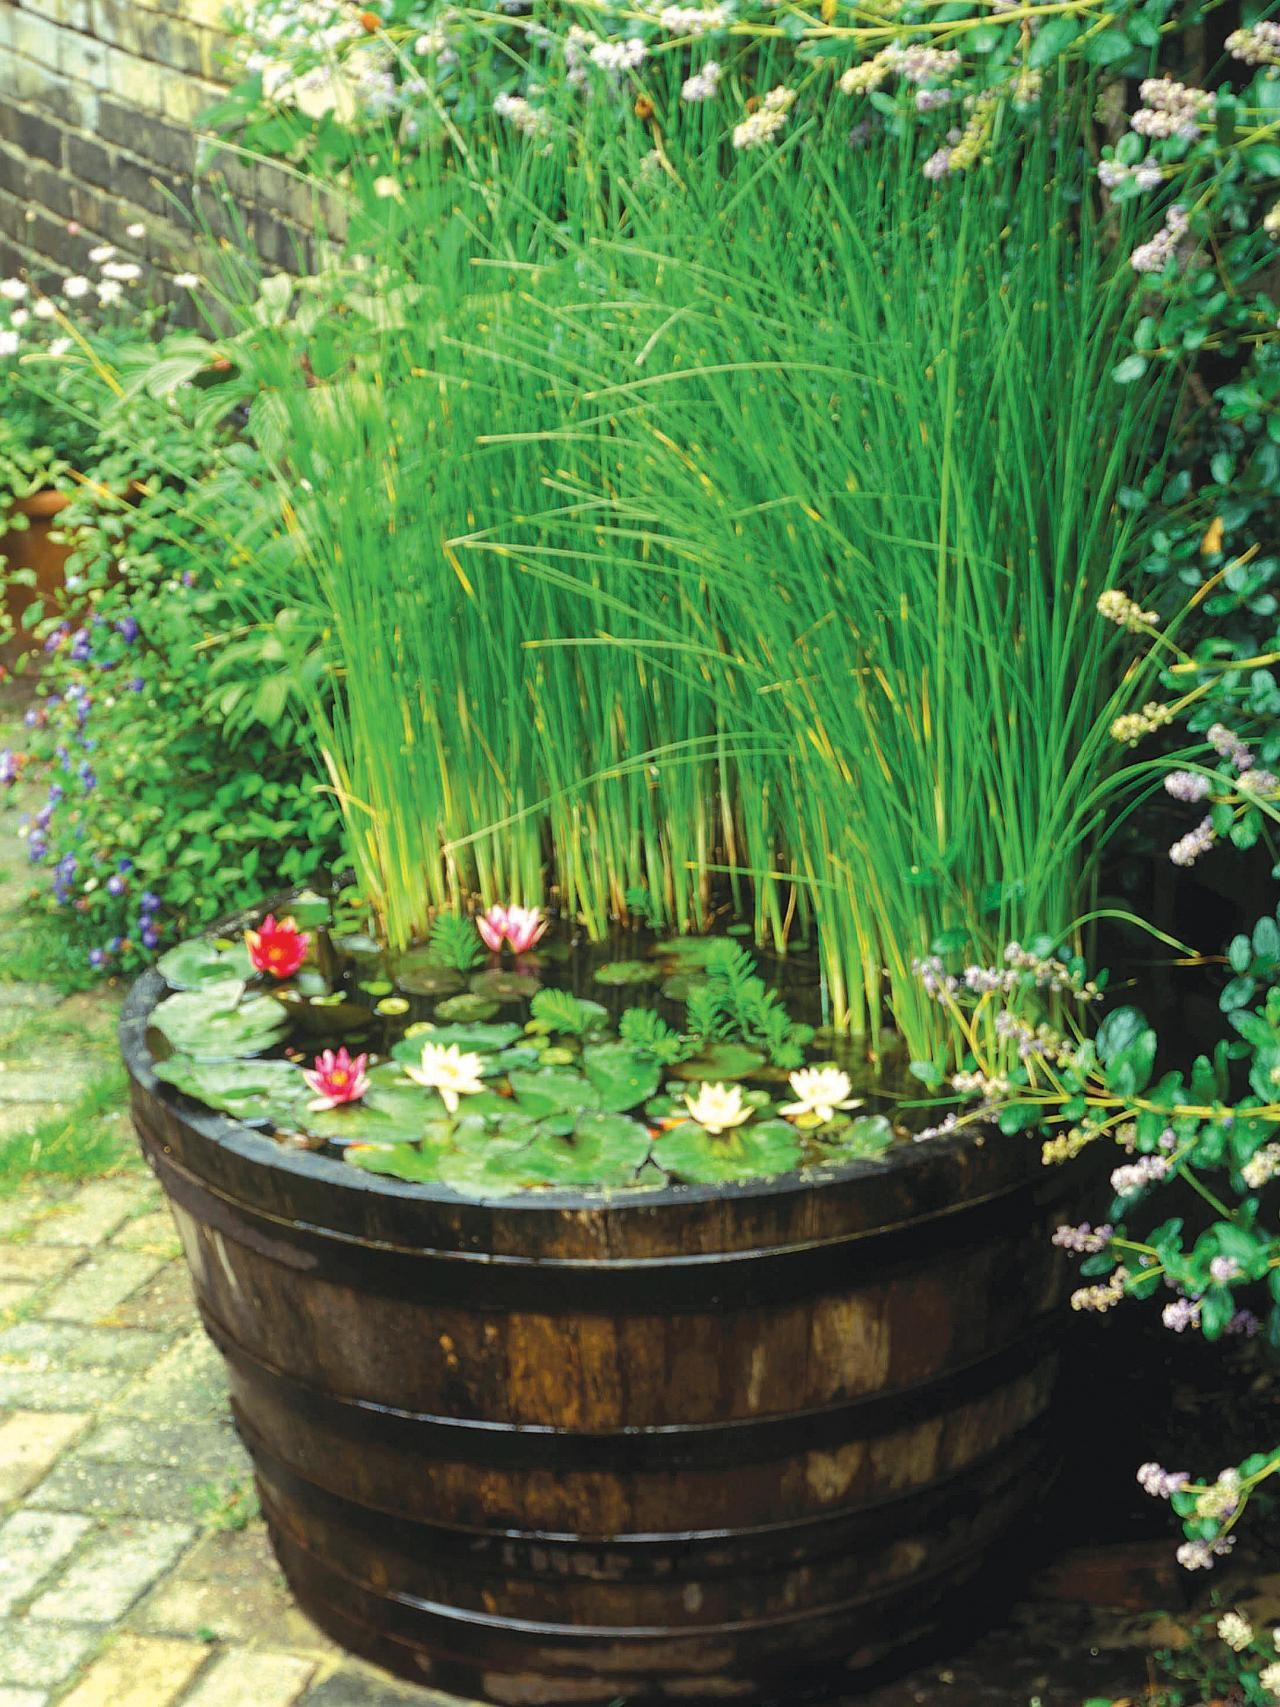 Flowing or Still, Water Features Captivate | Landscaping Ideas and ...